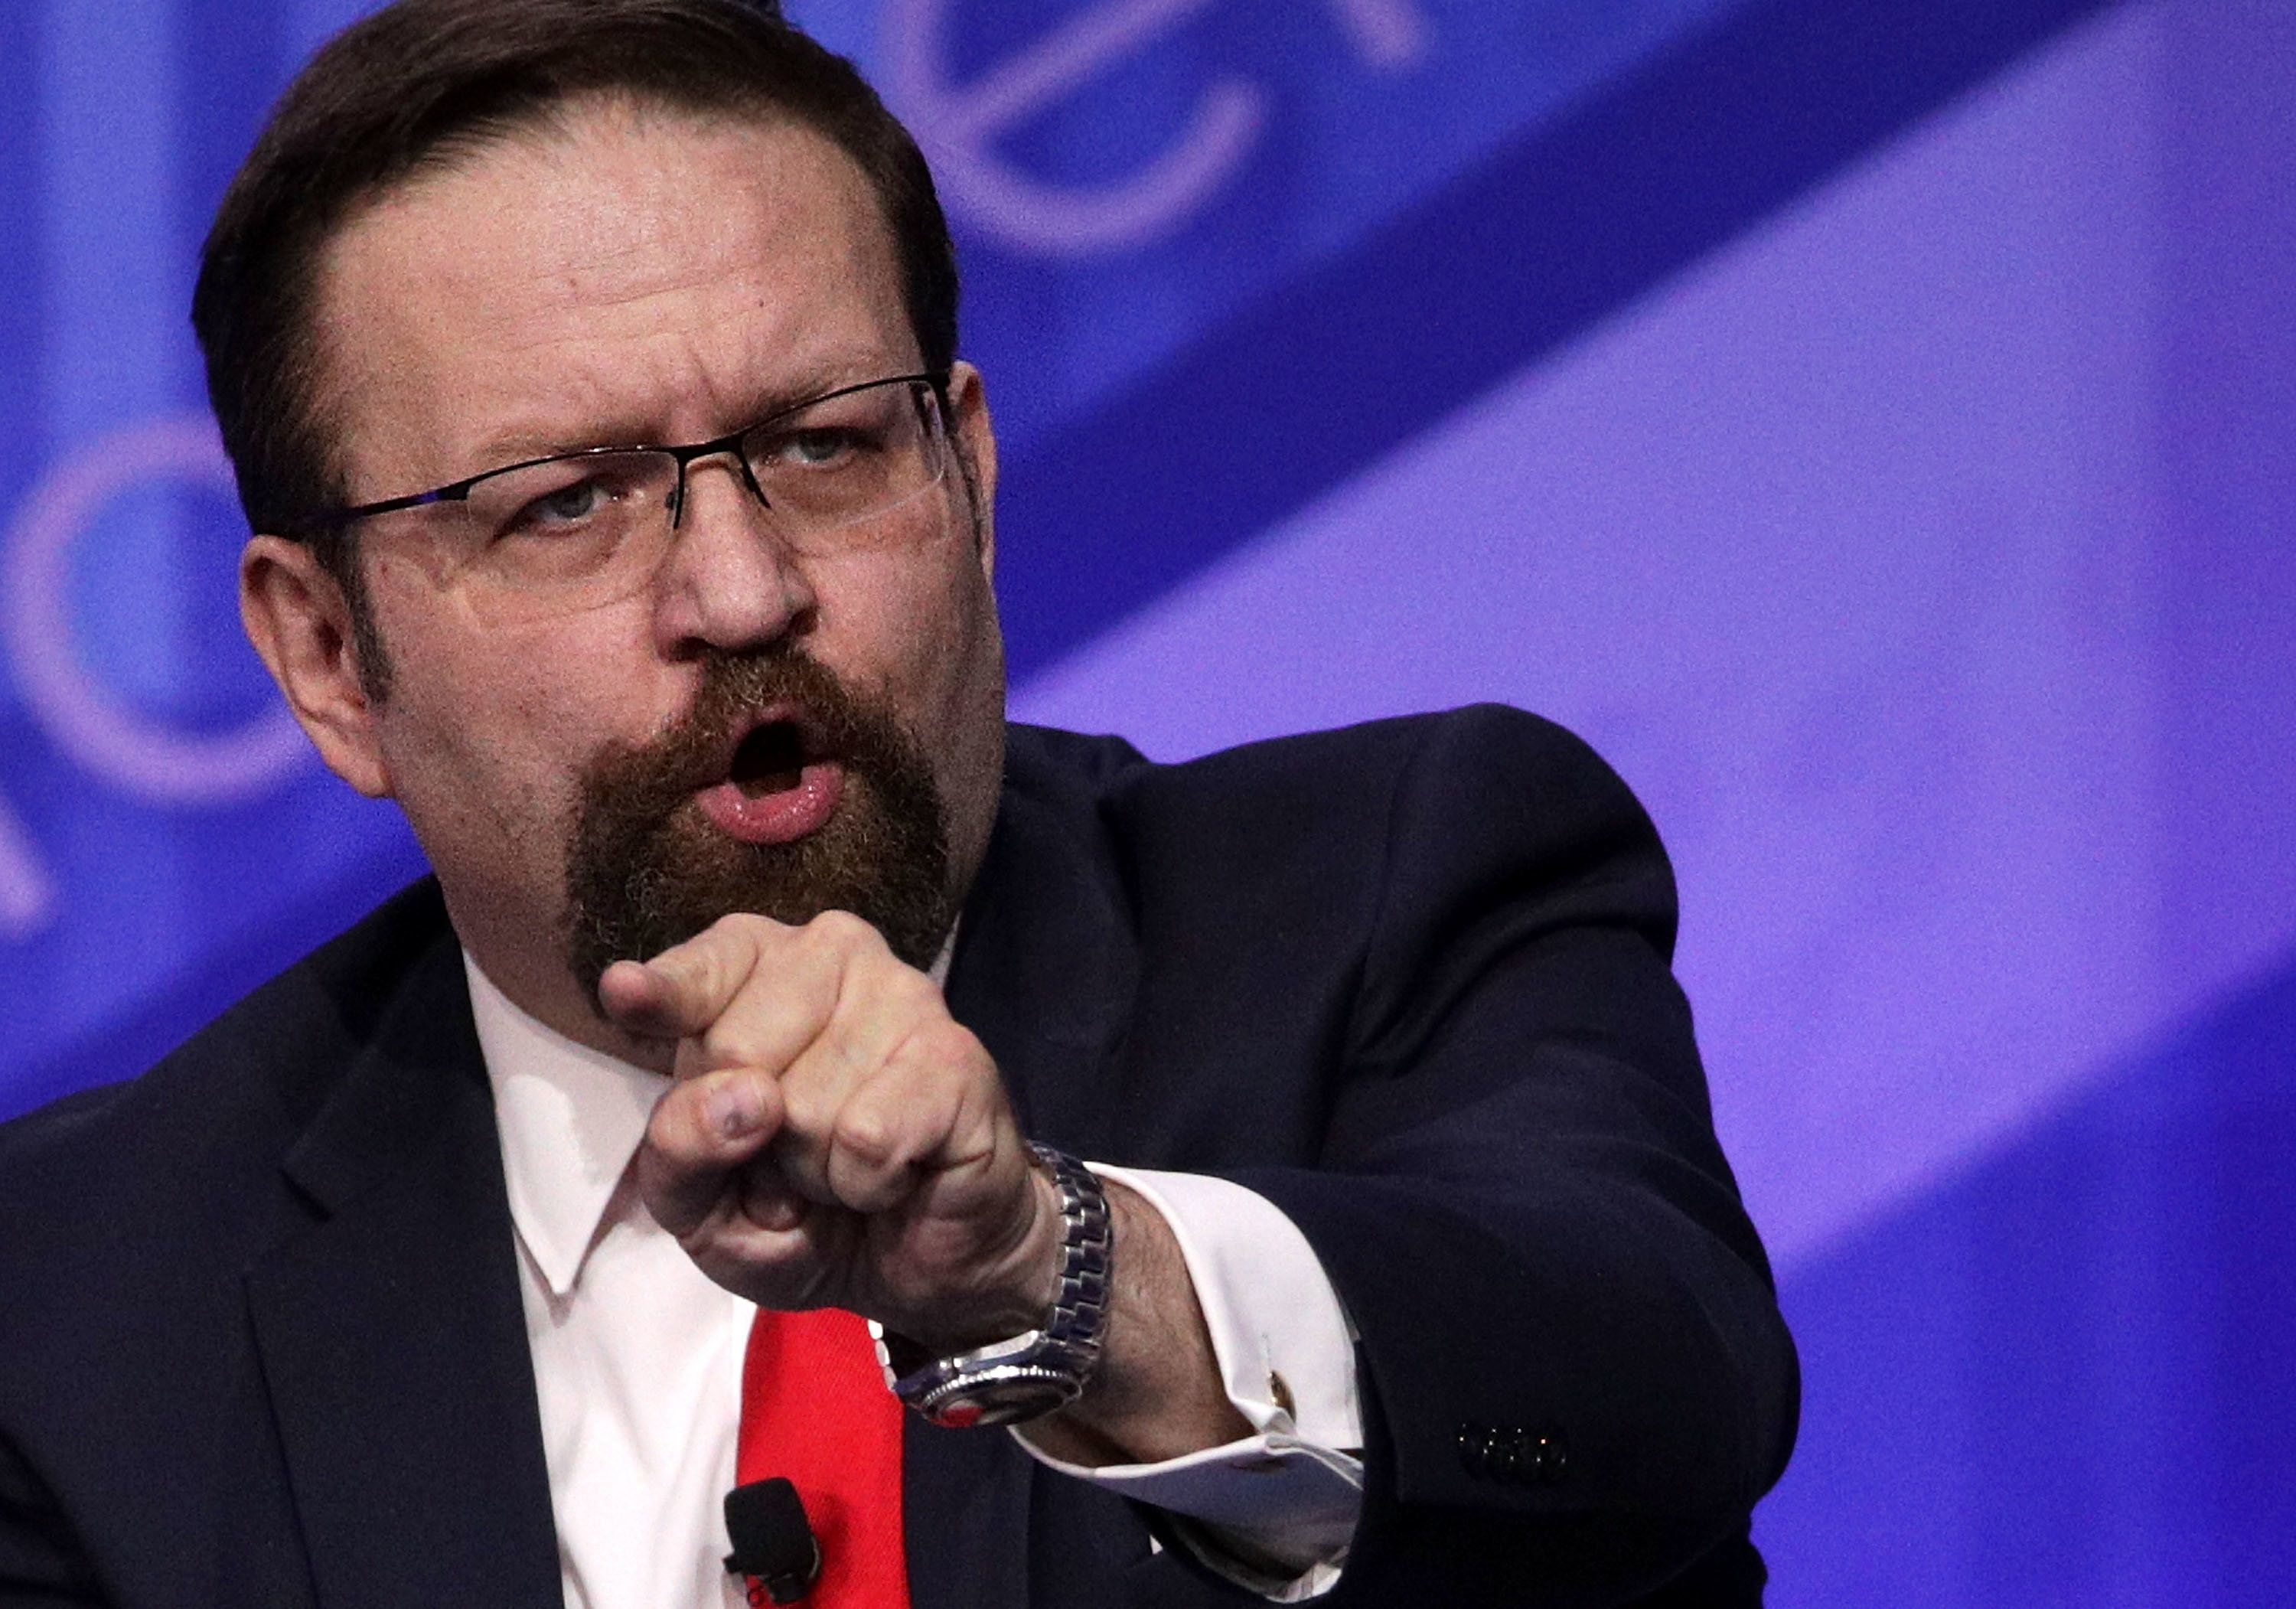 NATIONAL HARBOR, MD - FEBRUARY 24:  Deputy assistant to President Trump Sebastian Gorka participates in a discussion during the Conservative Political Action Conference at the Gaylord National Resort and Convention Center February 24, 2017 in National Harbor, Maryland. Hosted by the American Conservative Union, CPAC is an annual gathering of right wing politicians, commentators and their supporters.  (Photo by Alex Wong/Getty Images)